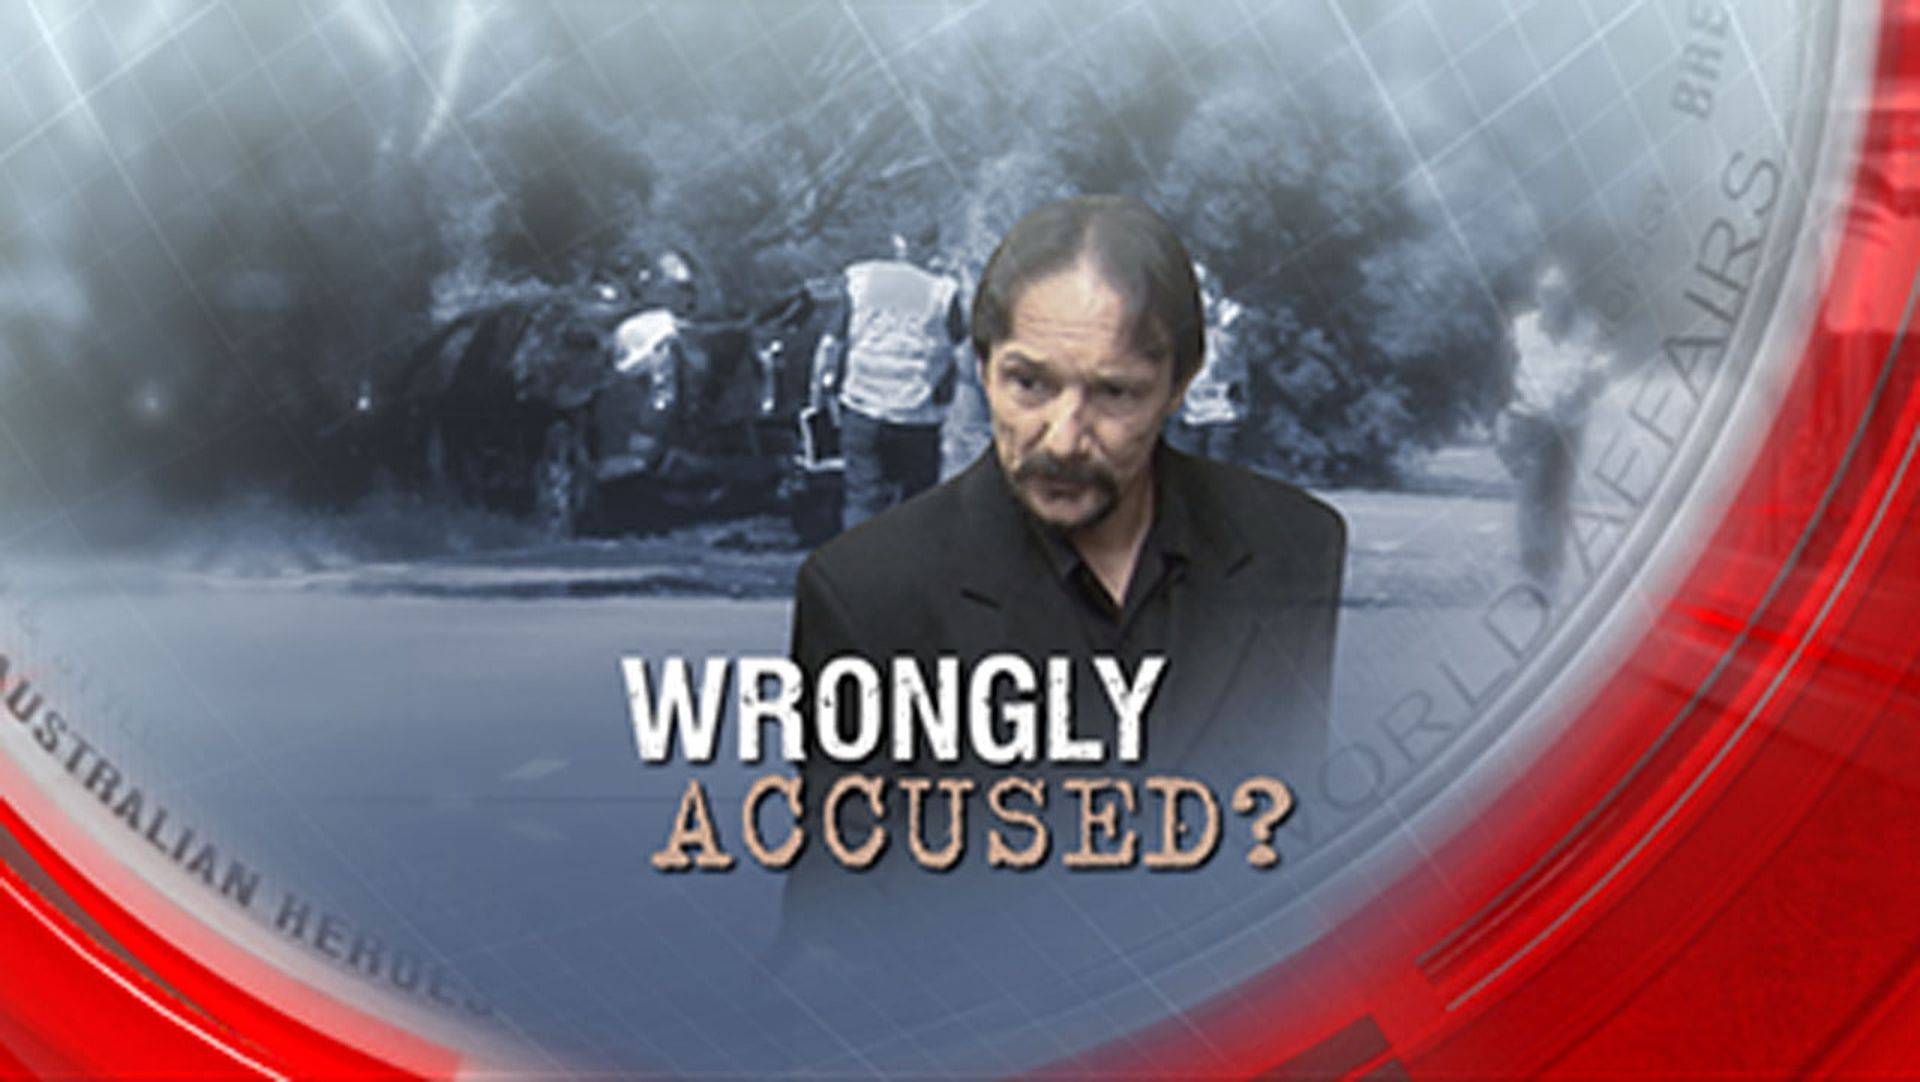 Wrongly accused?: A Current Affair 2018, Short Video